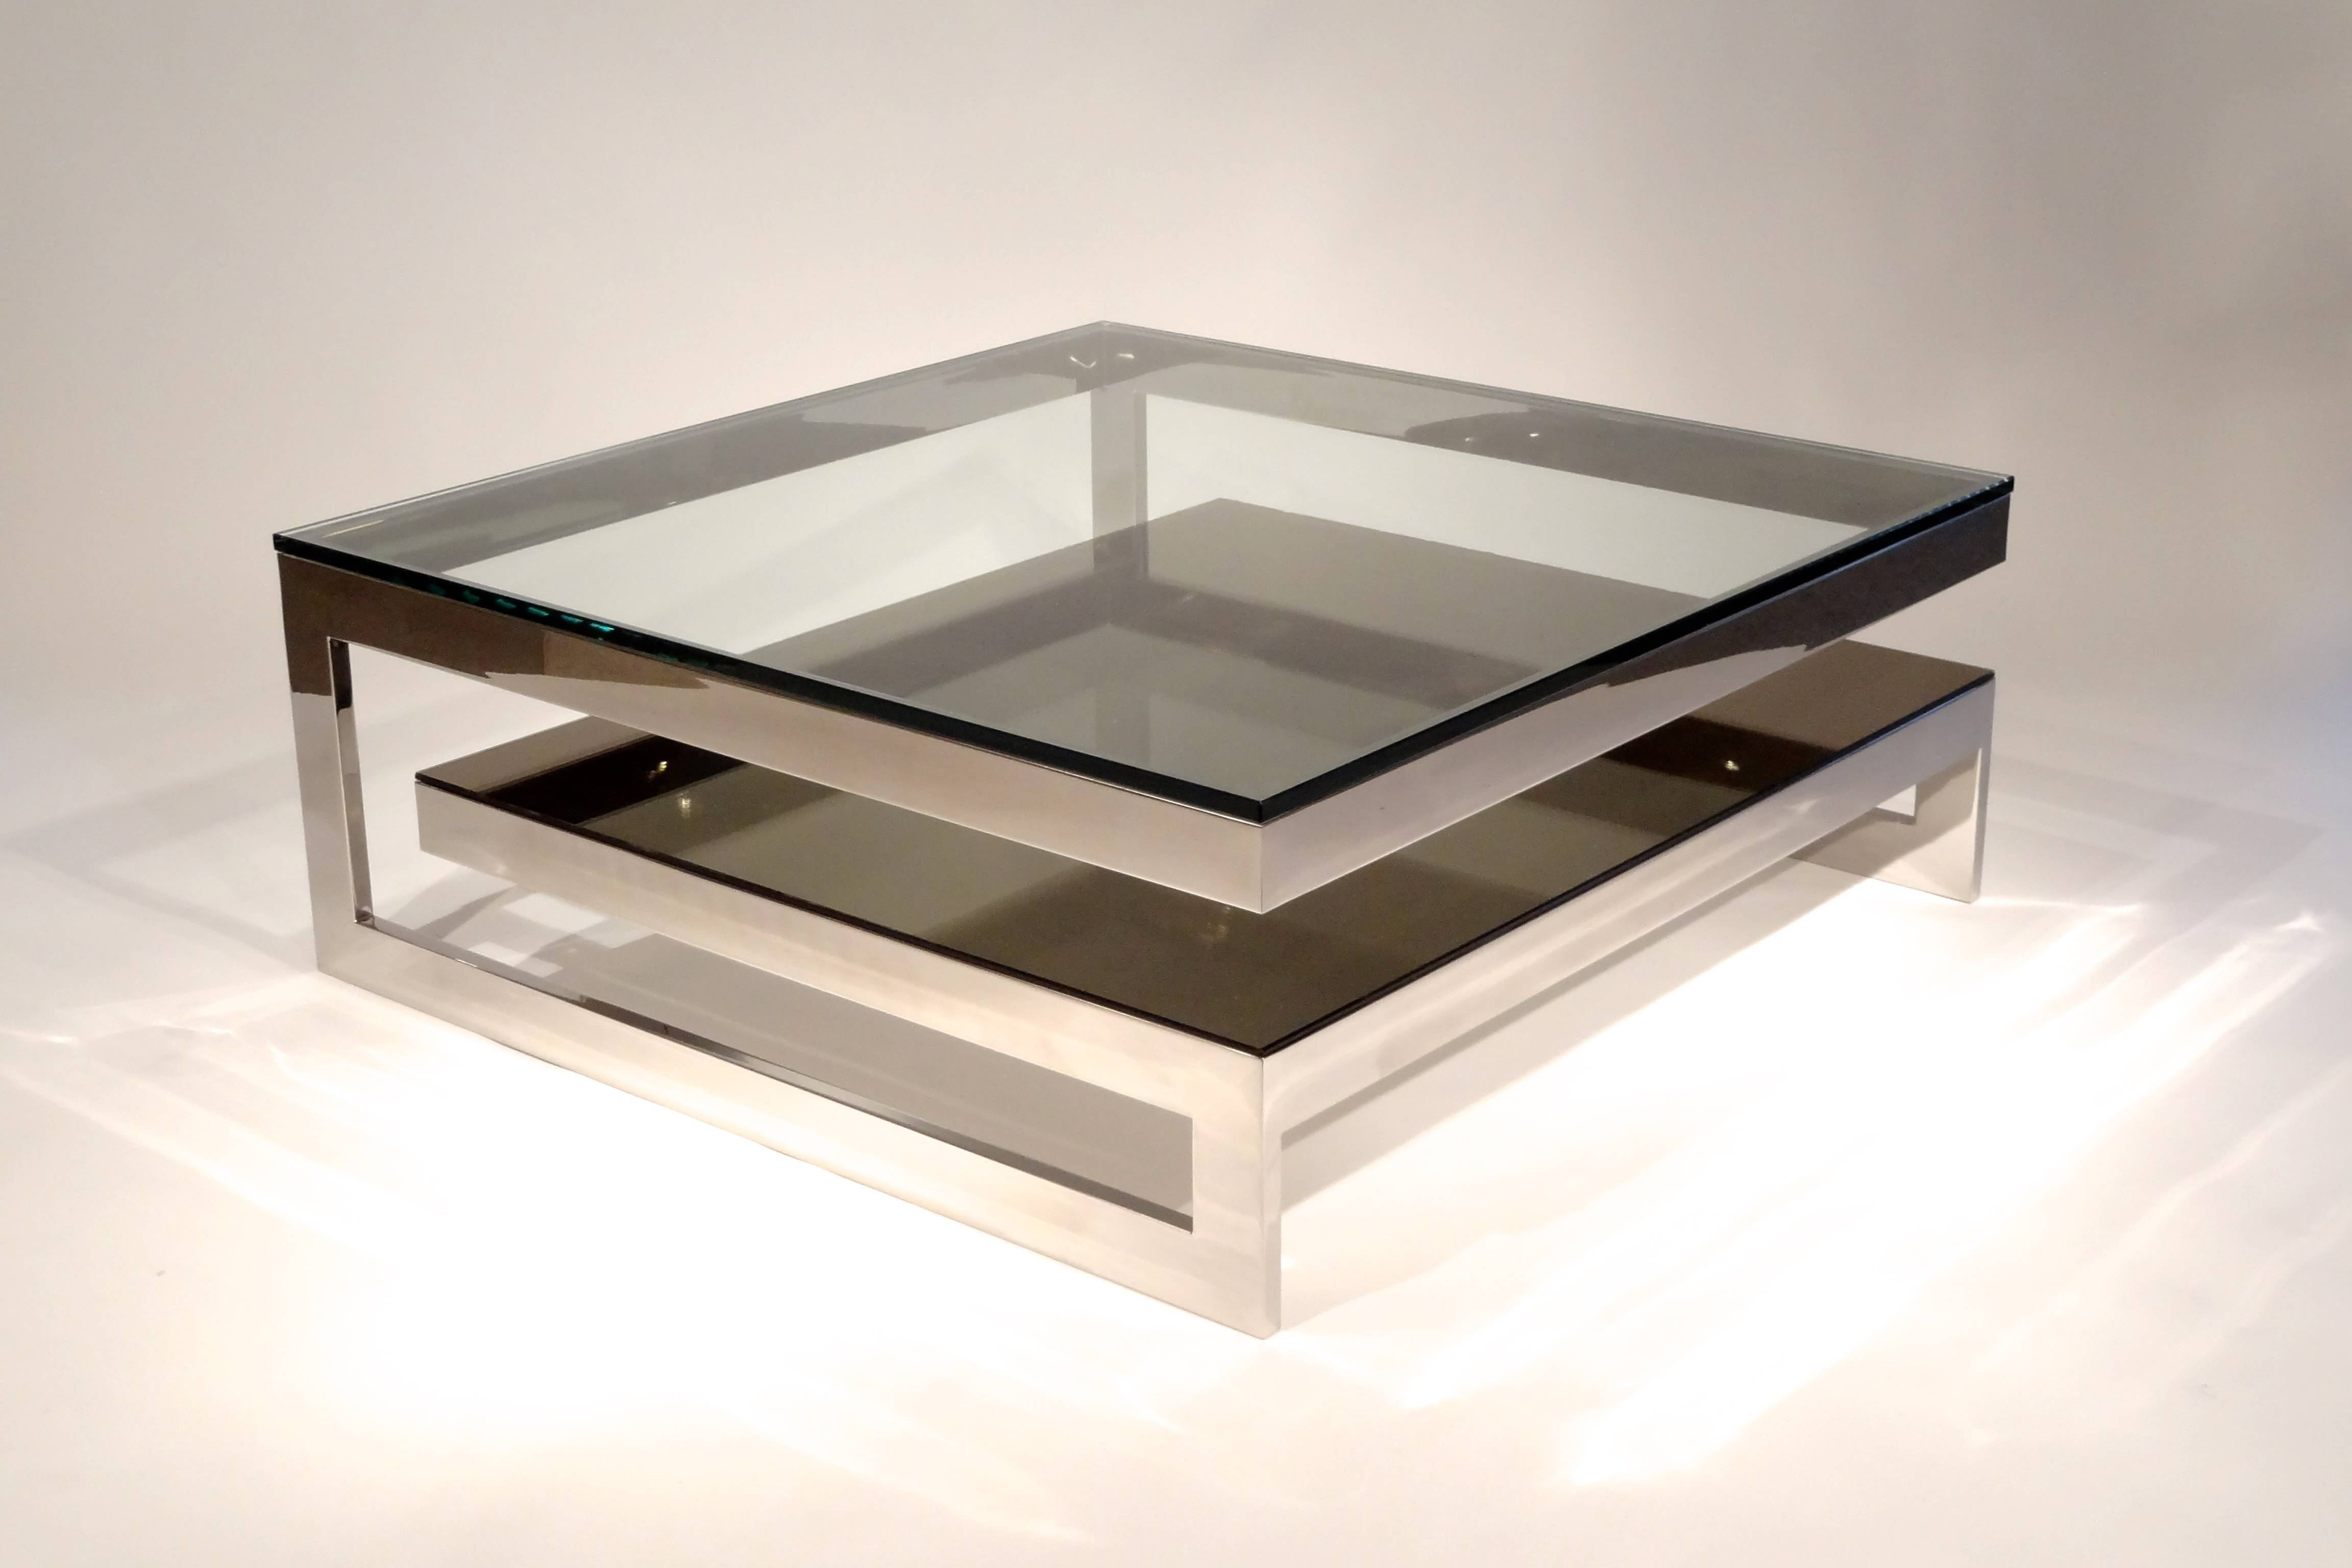 Modern Contemporary Glass Coffee Tables | Coffee Tables Decoration throughout Glass Coffee Tables With Storage (Image 27 of 30)